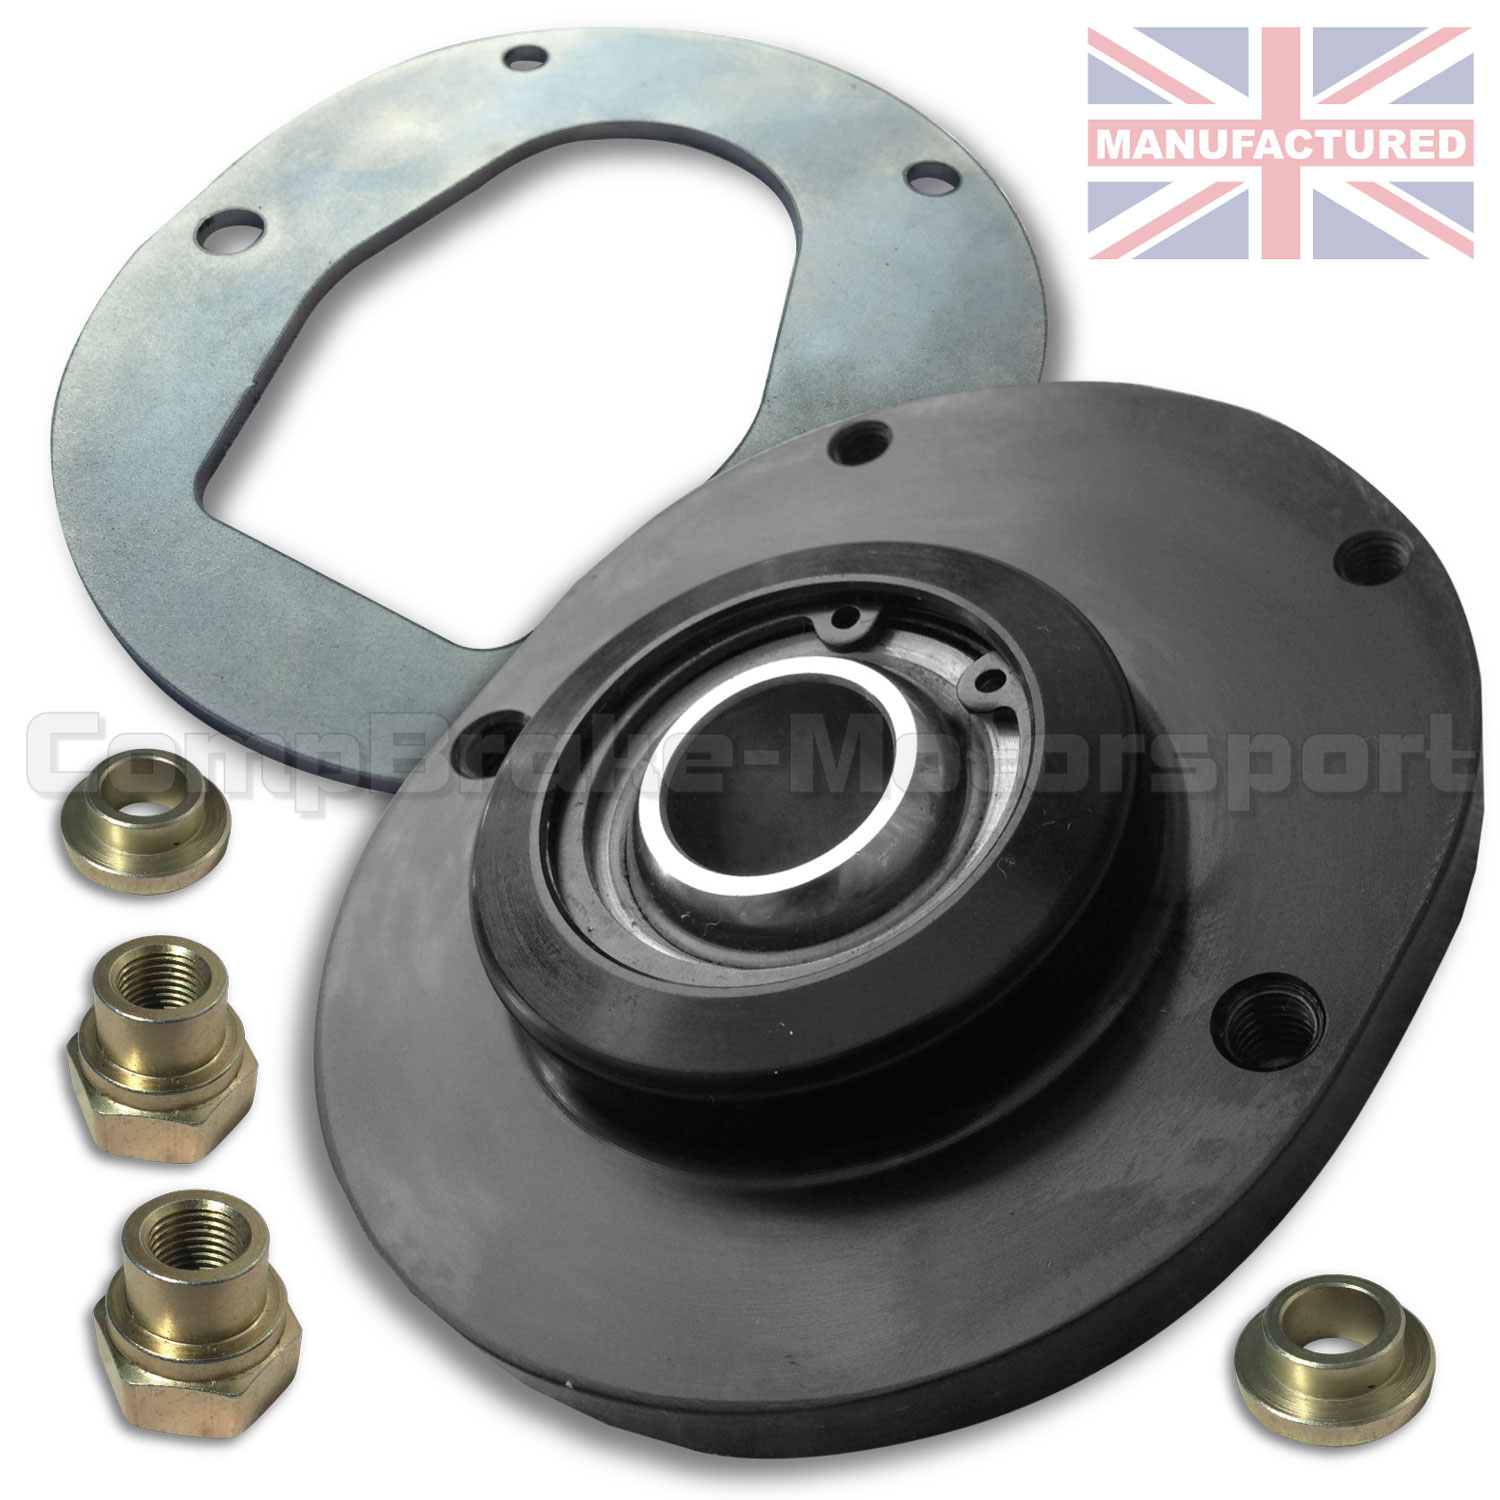 citroen ds hydraulic system with Citroen Ds3 Front Fixed Suspension Top Mount With Strengthening Plates Pair on D9 85 D9 83 D8 A8 D8 AD  D9 82 D8 B1 D8 B5 D9 8A furthermore 1955 1975 Citroen Ds 19 20 21 23 together with Citroen Hydropneumatic Suspension Retired likewise 44063 as well Citroen C5 Adieu To The Hydropneumatic Suspension.